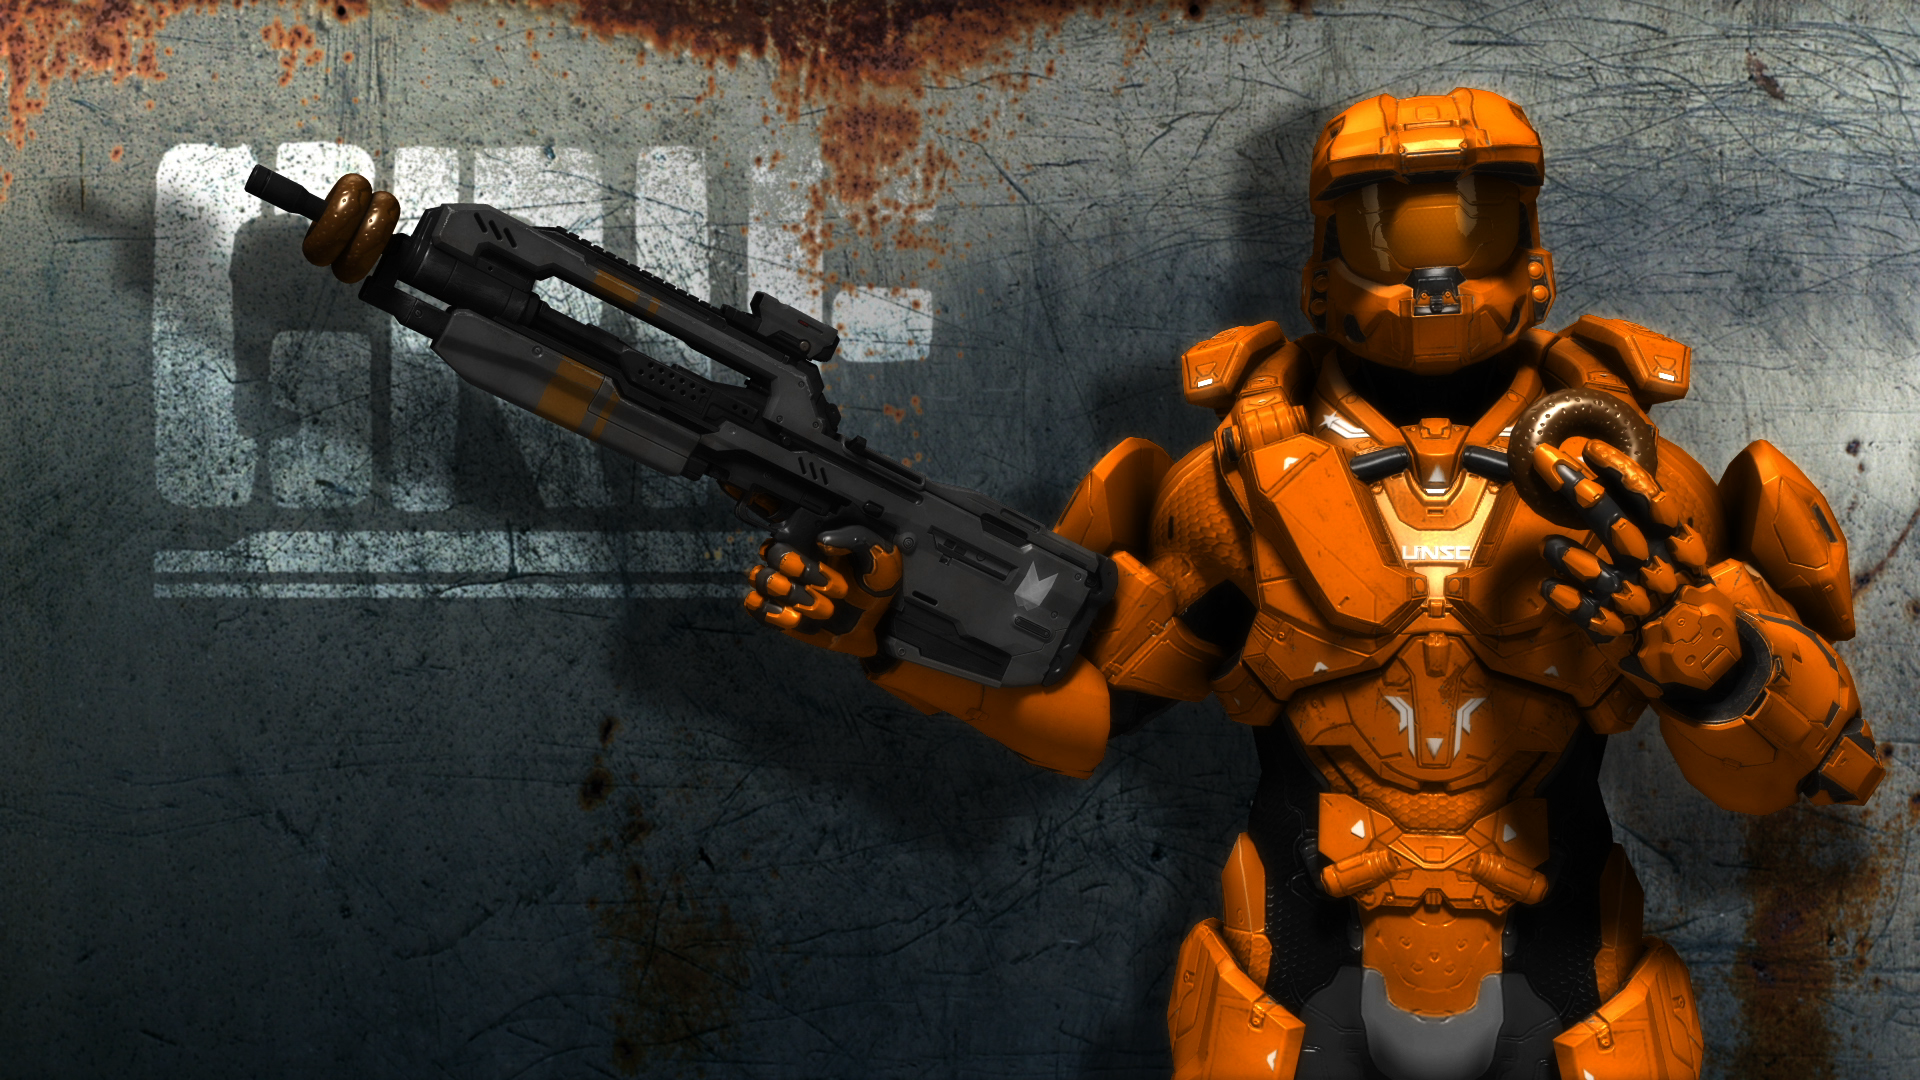 Red vs blue backgrounds   SF Wallpaper 1920x1080